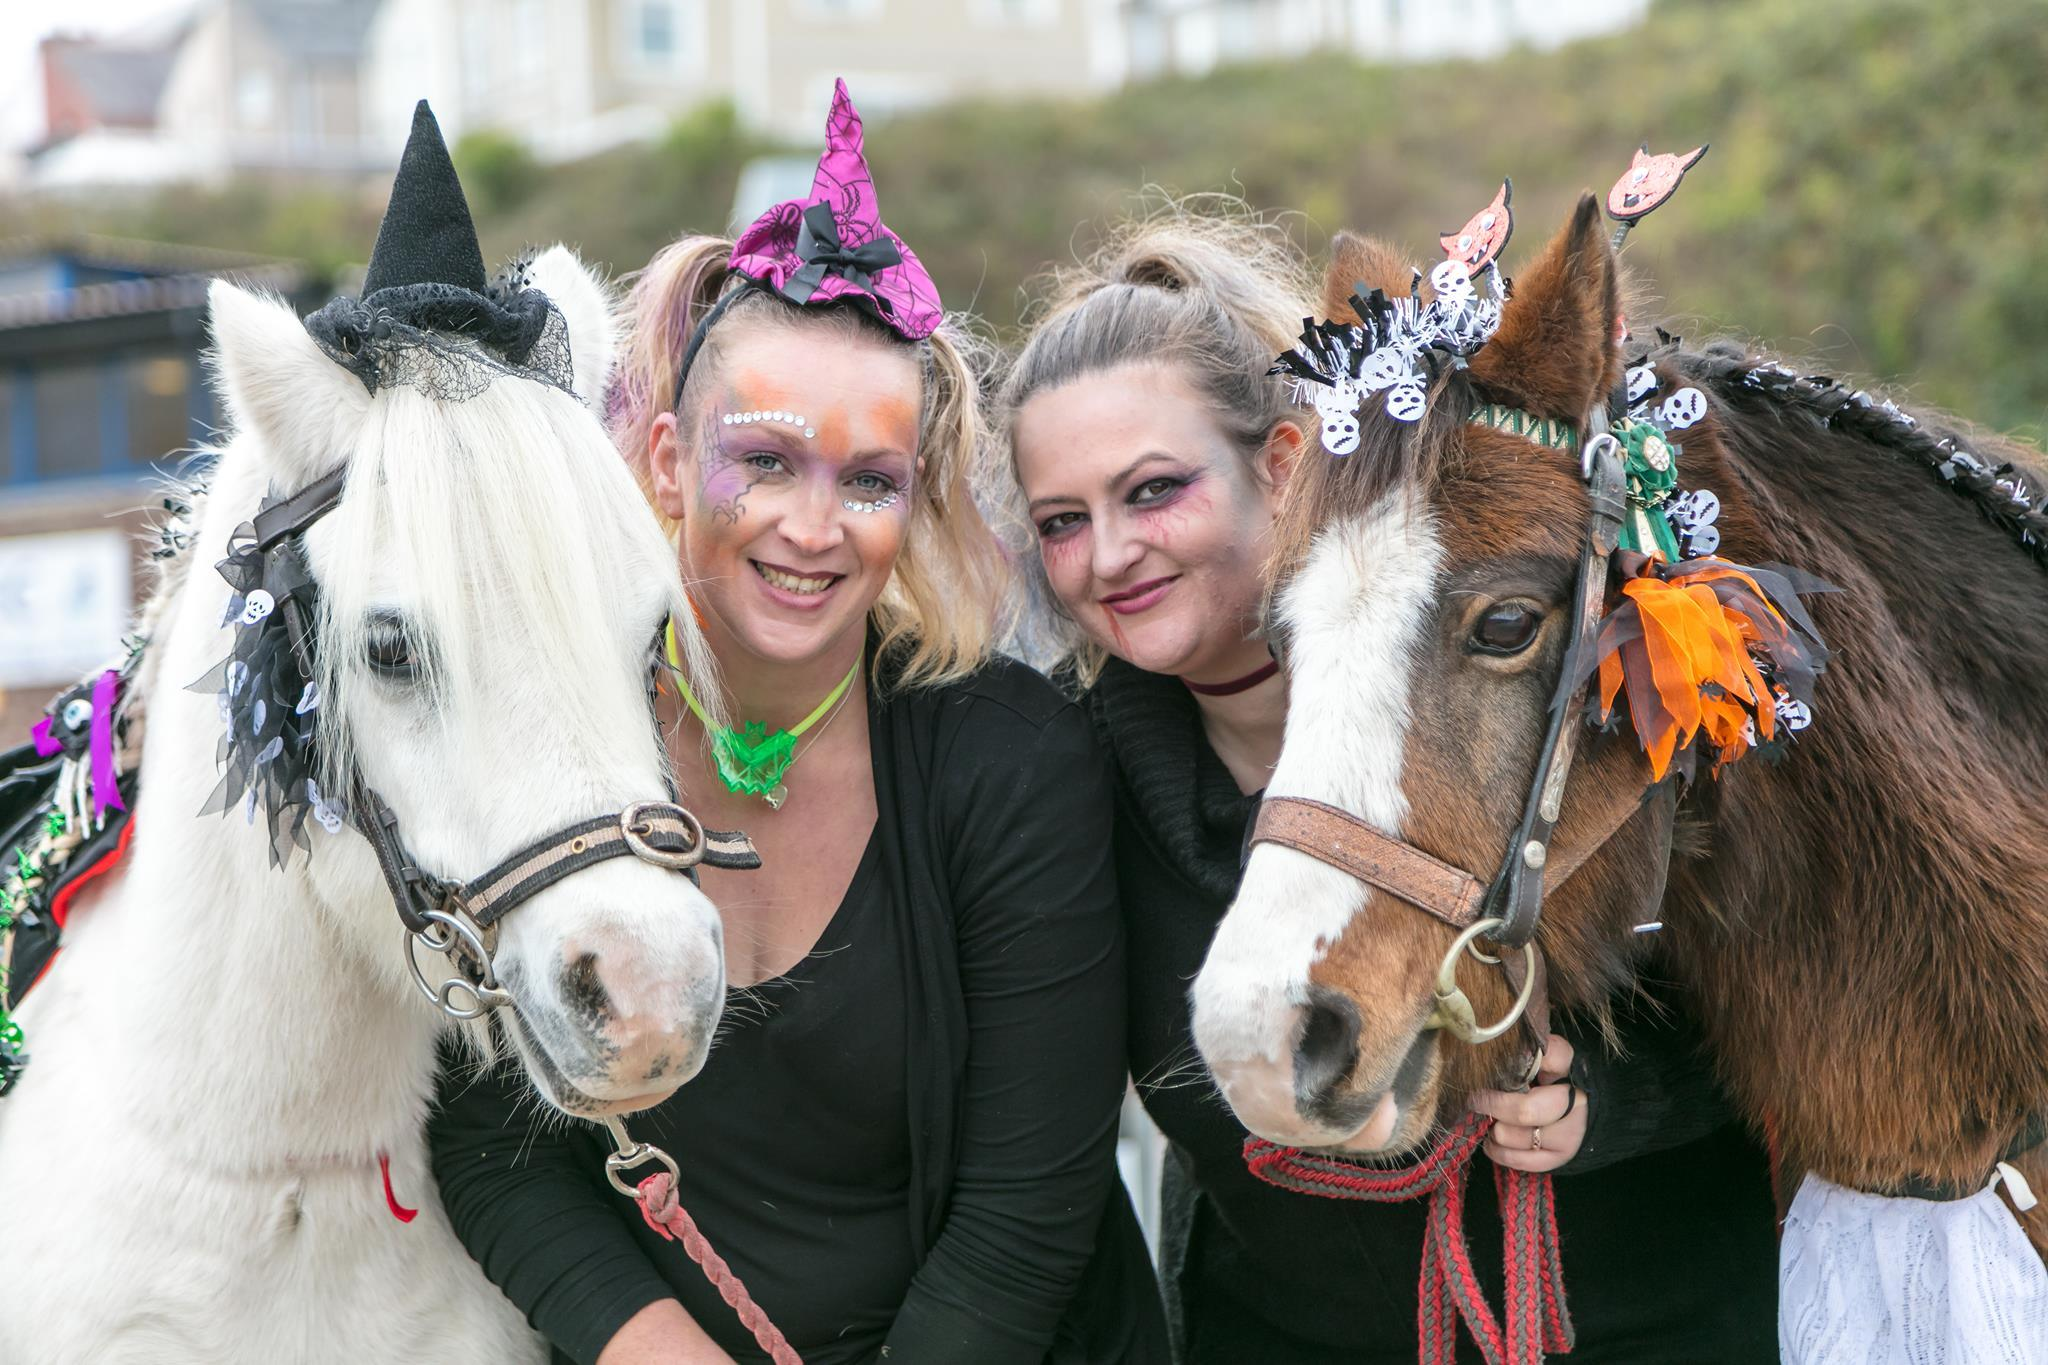 Halloween horses and creepy crafts in Milford Haven.